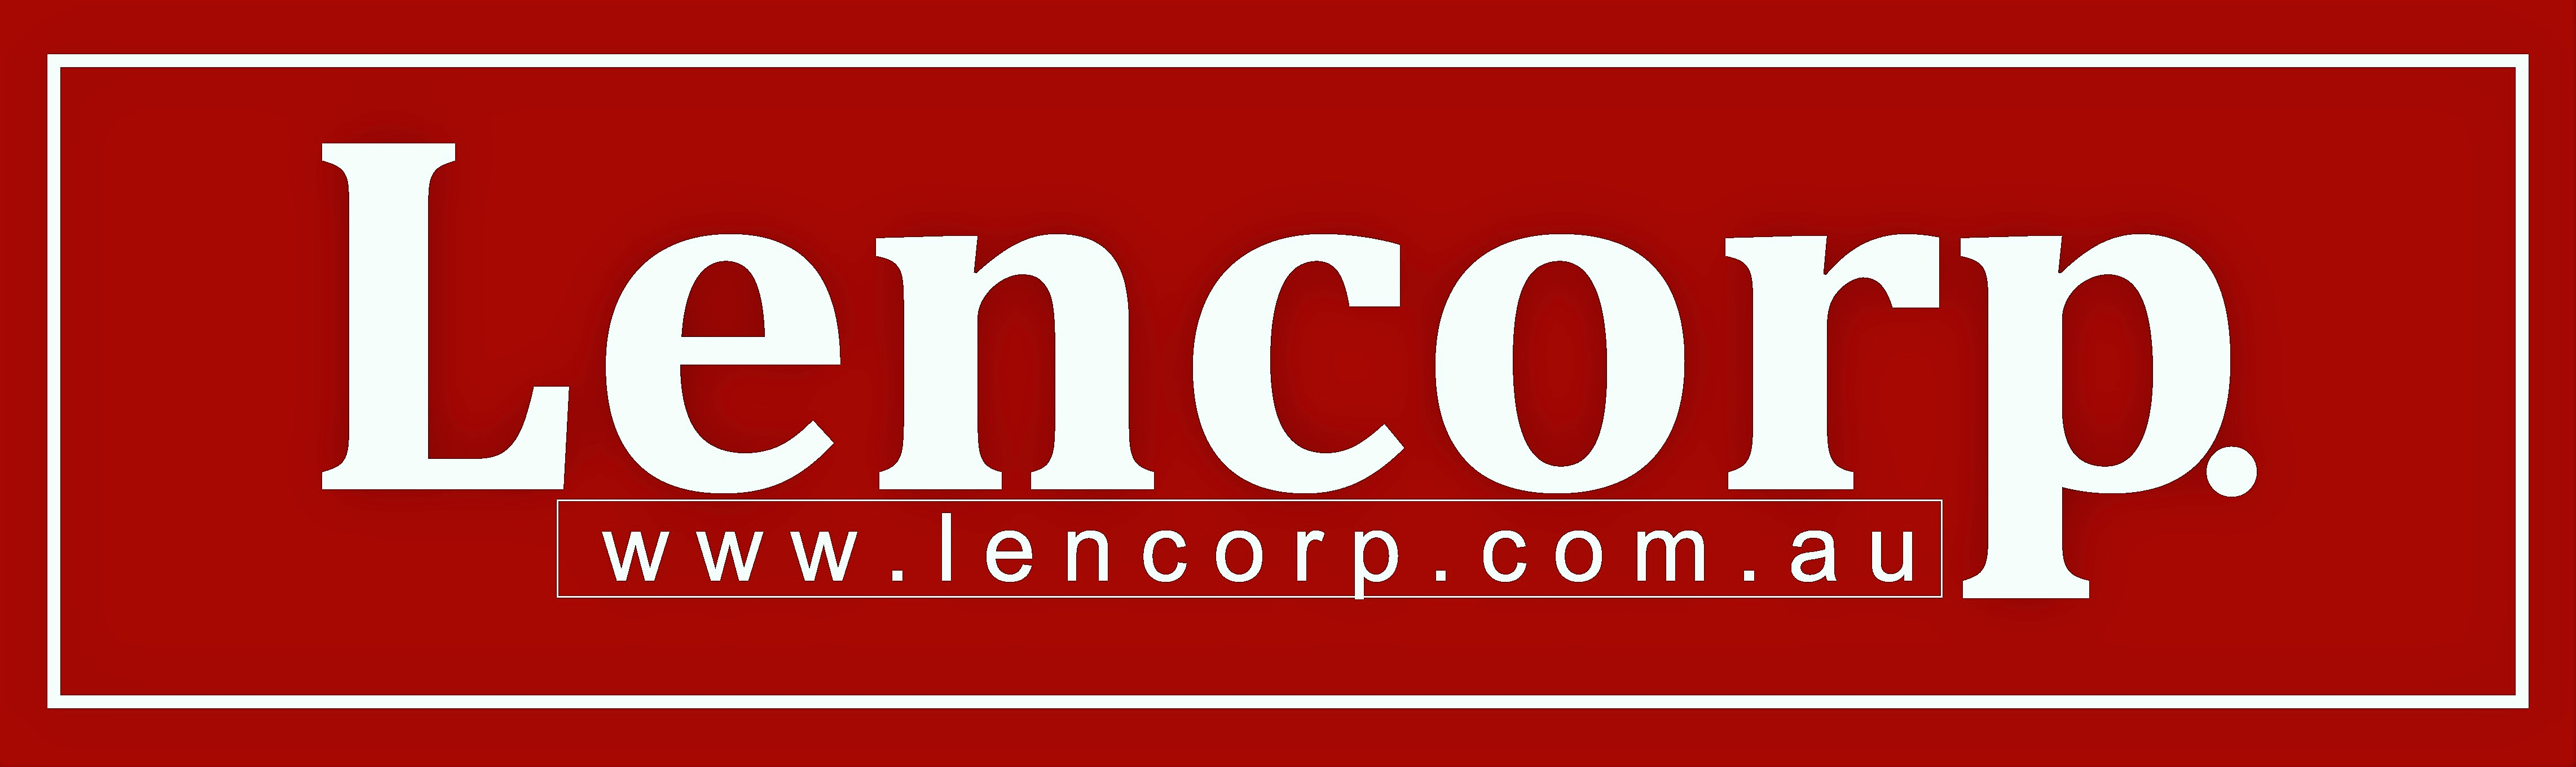 Lencorp - Lencorp Project Services  Property Management, Development Site Sales, Site Acquisitions and Project Management